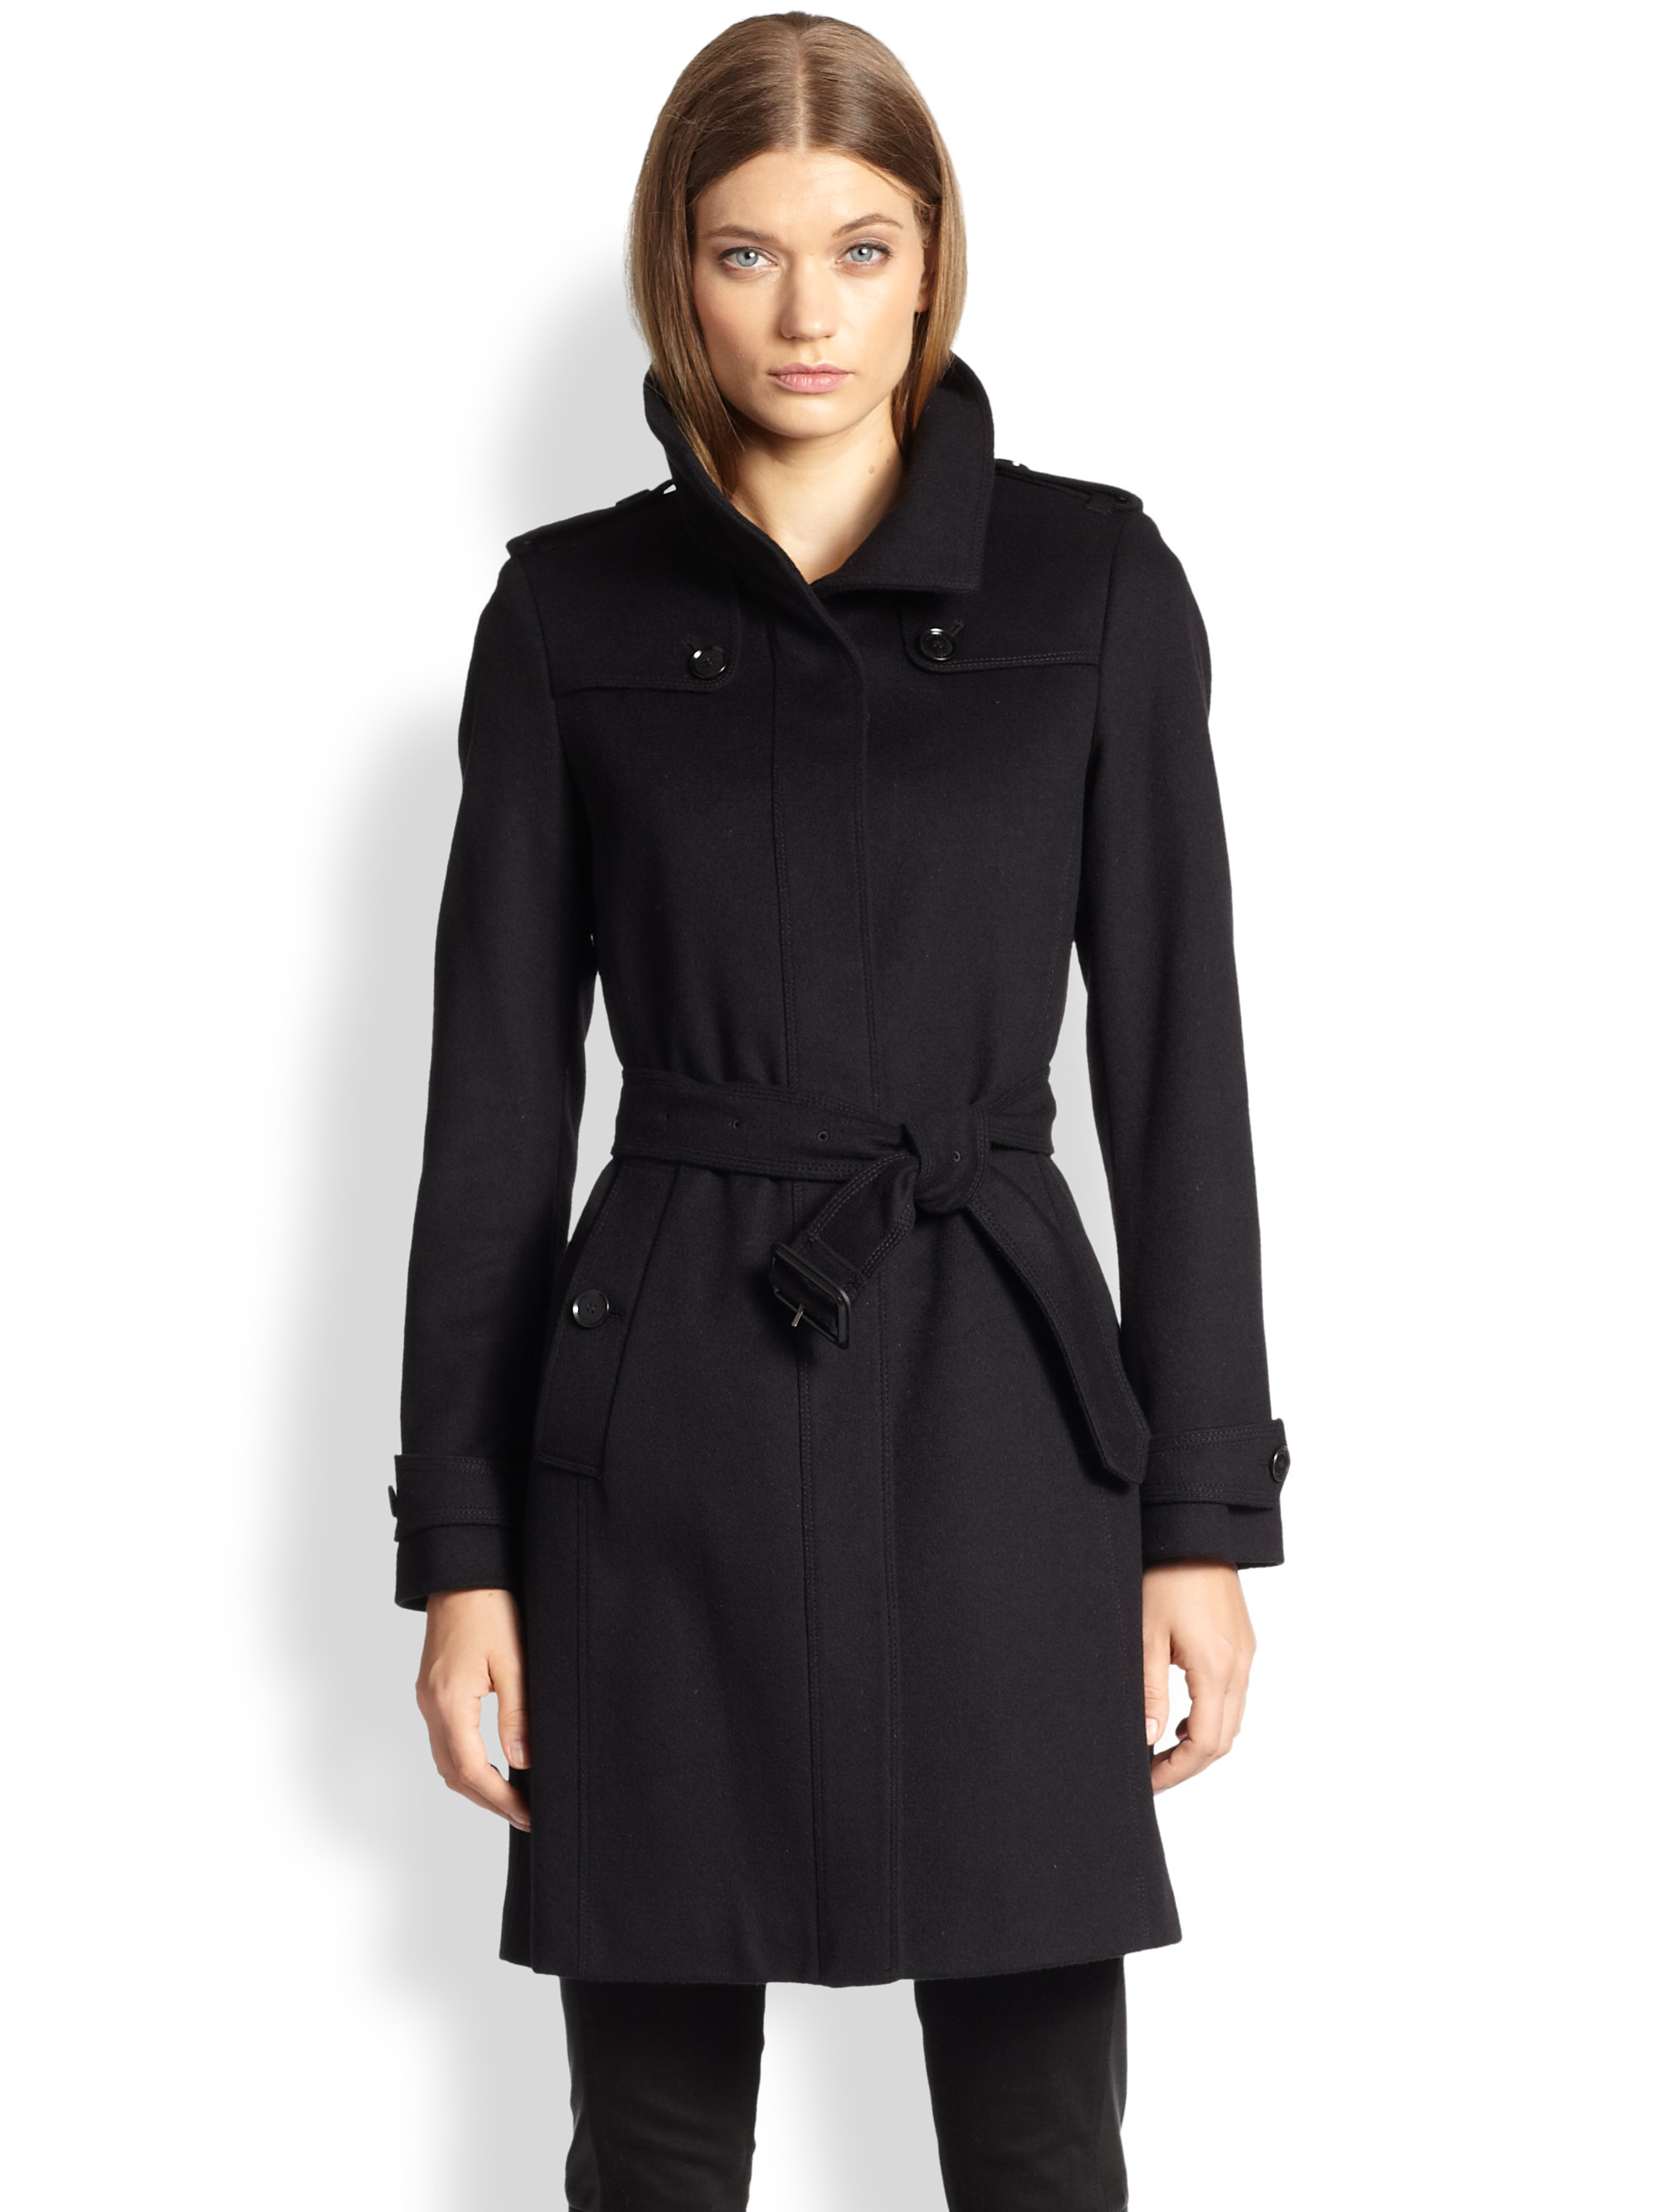 Burberry Basingstoke Wool & Cashmere Coat in Black | Lyst